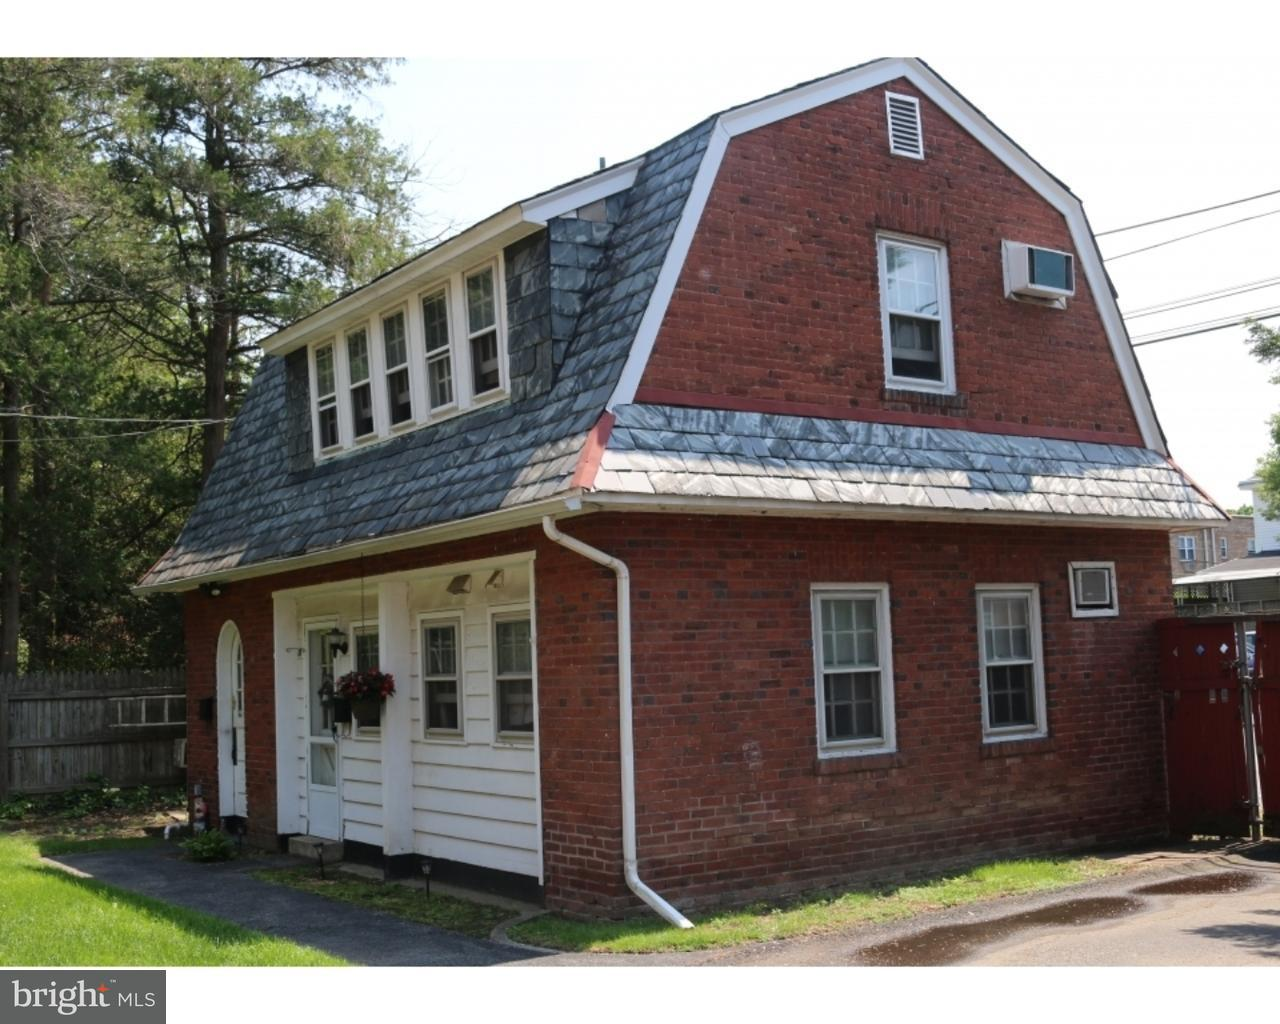 24 W SELLERS AVE, RIDLEY PARK - Listed at $459,000, RIDLEY PARK